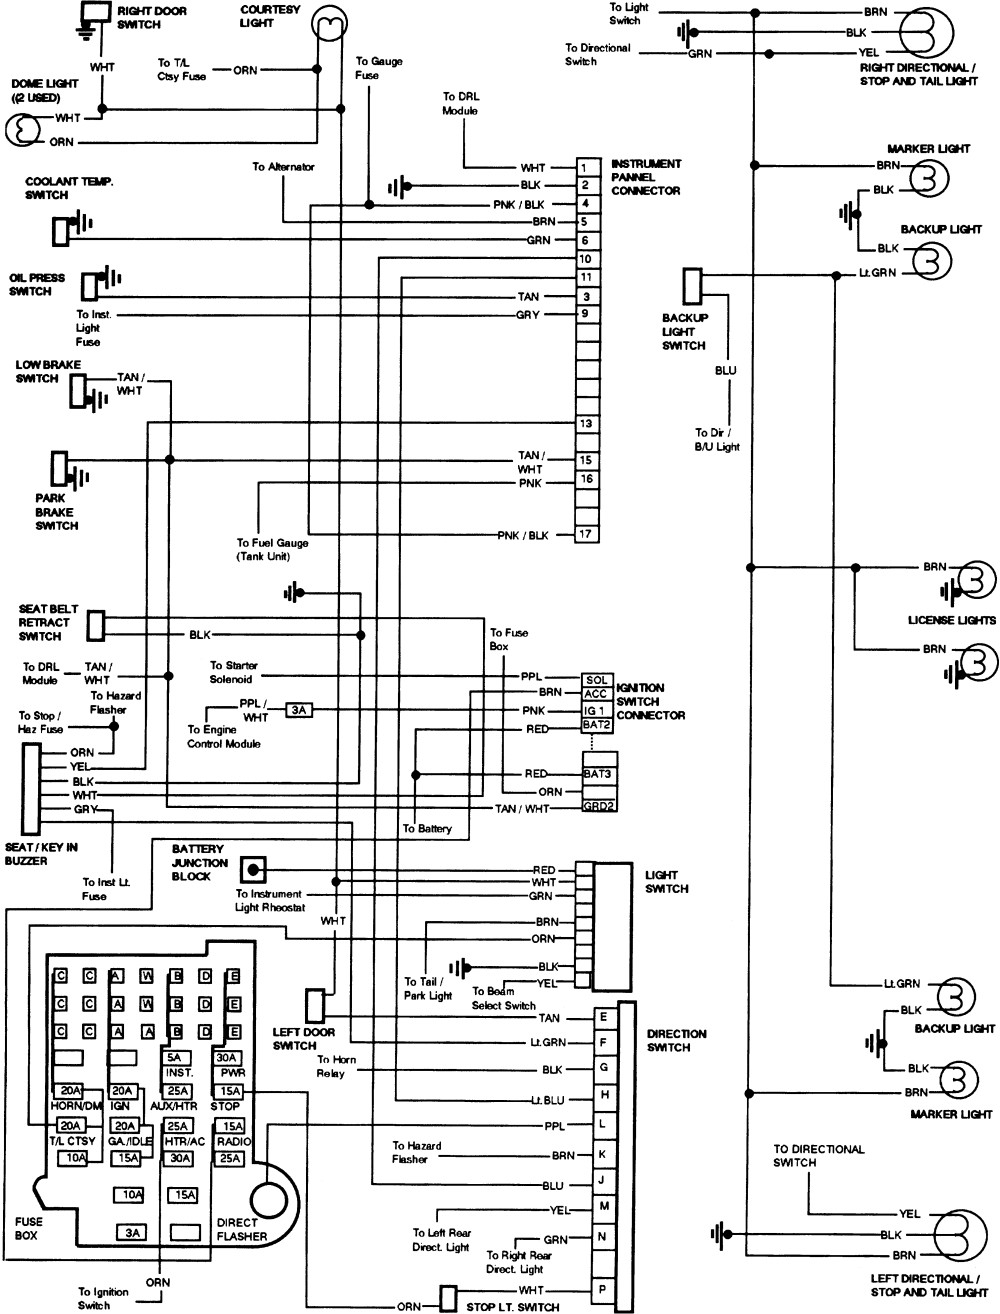 1989 Chevy Truck Instrument Cluster Wiring Diagram from static-assets.imageservice.cloud